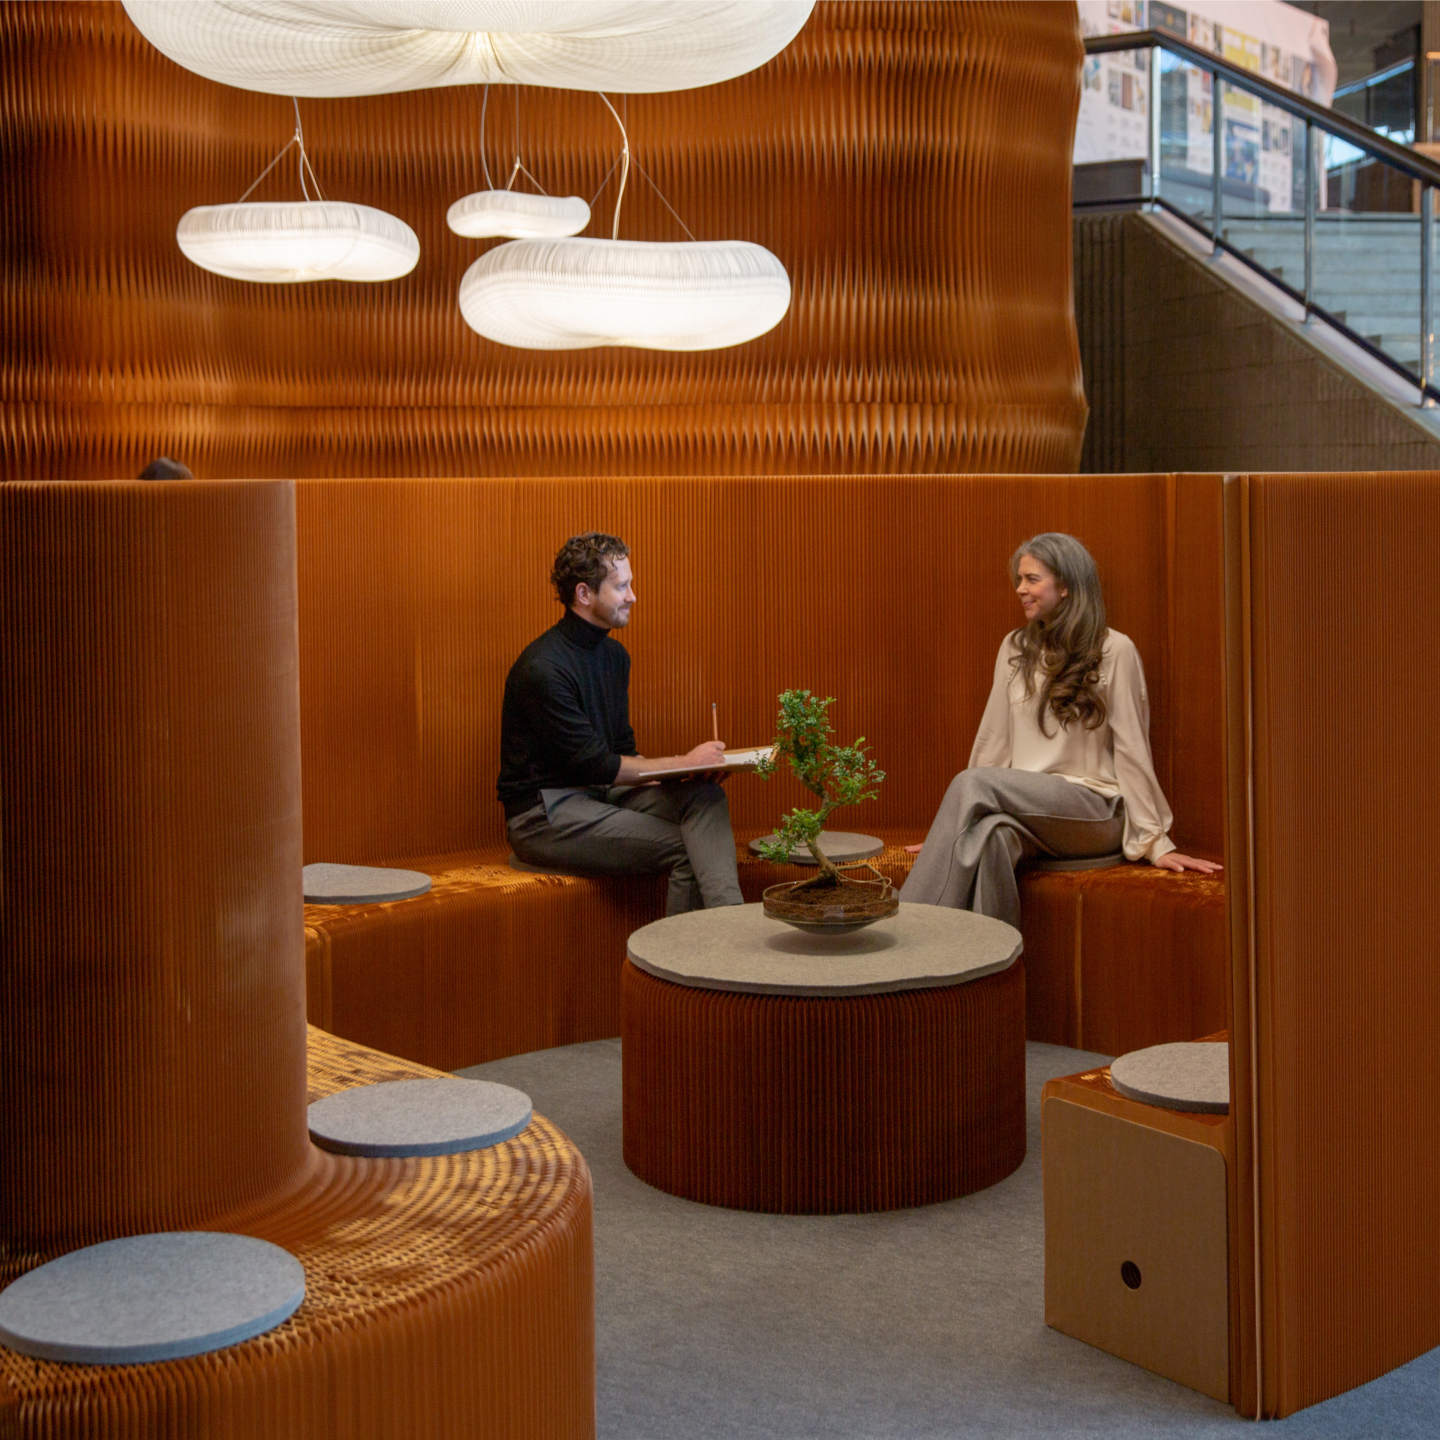 brown paper benchwall and seating